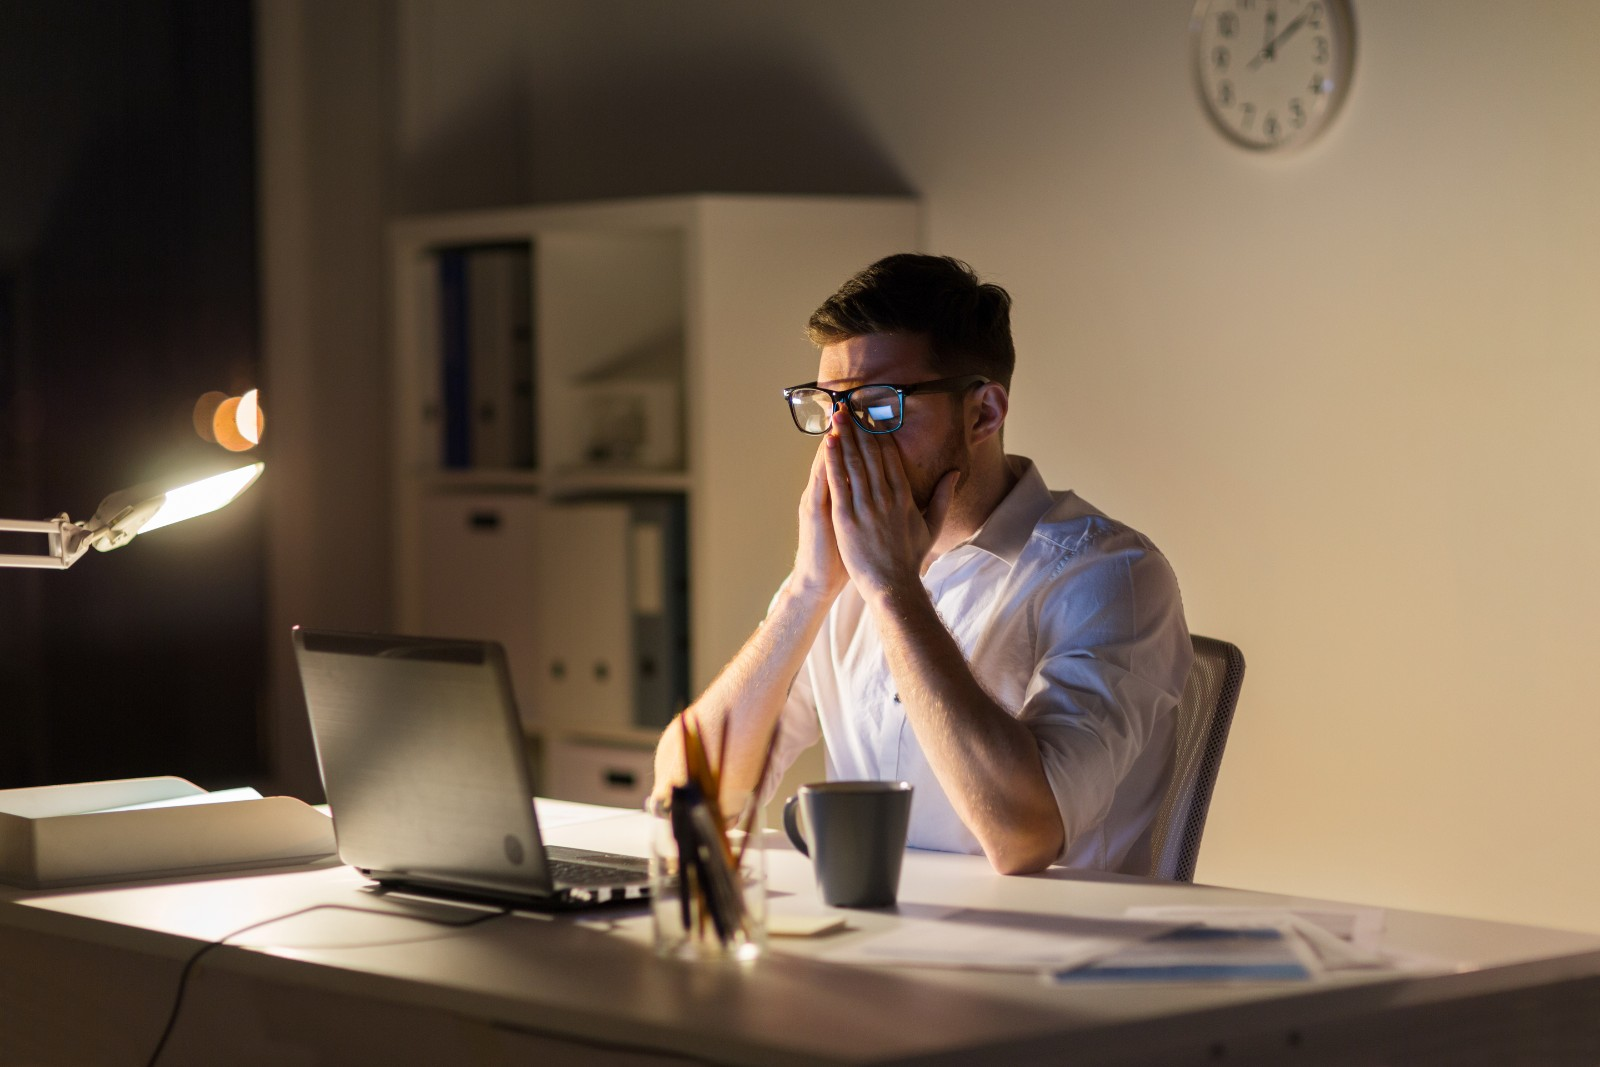 A suffering from sleep apnea while trying to work at his desk